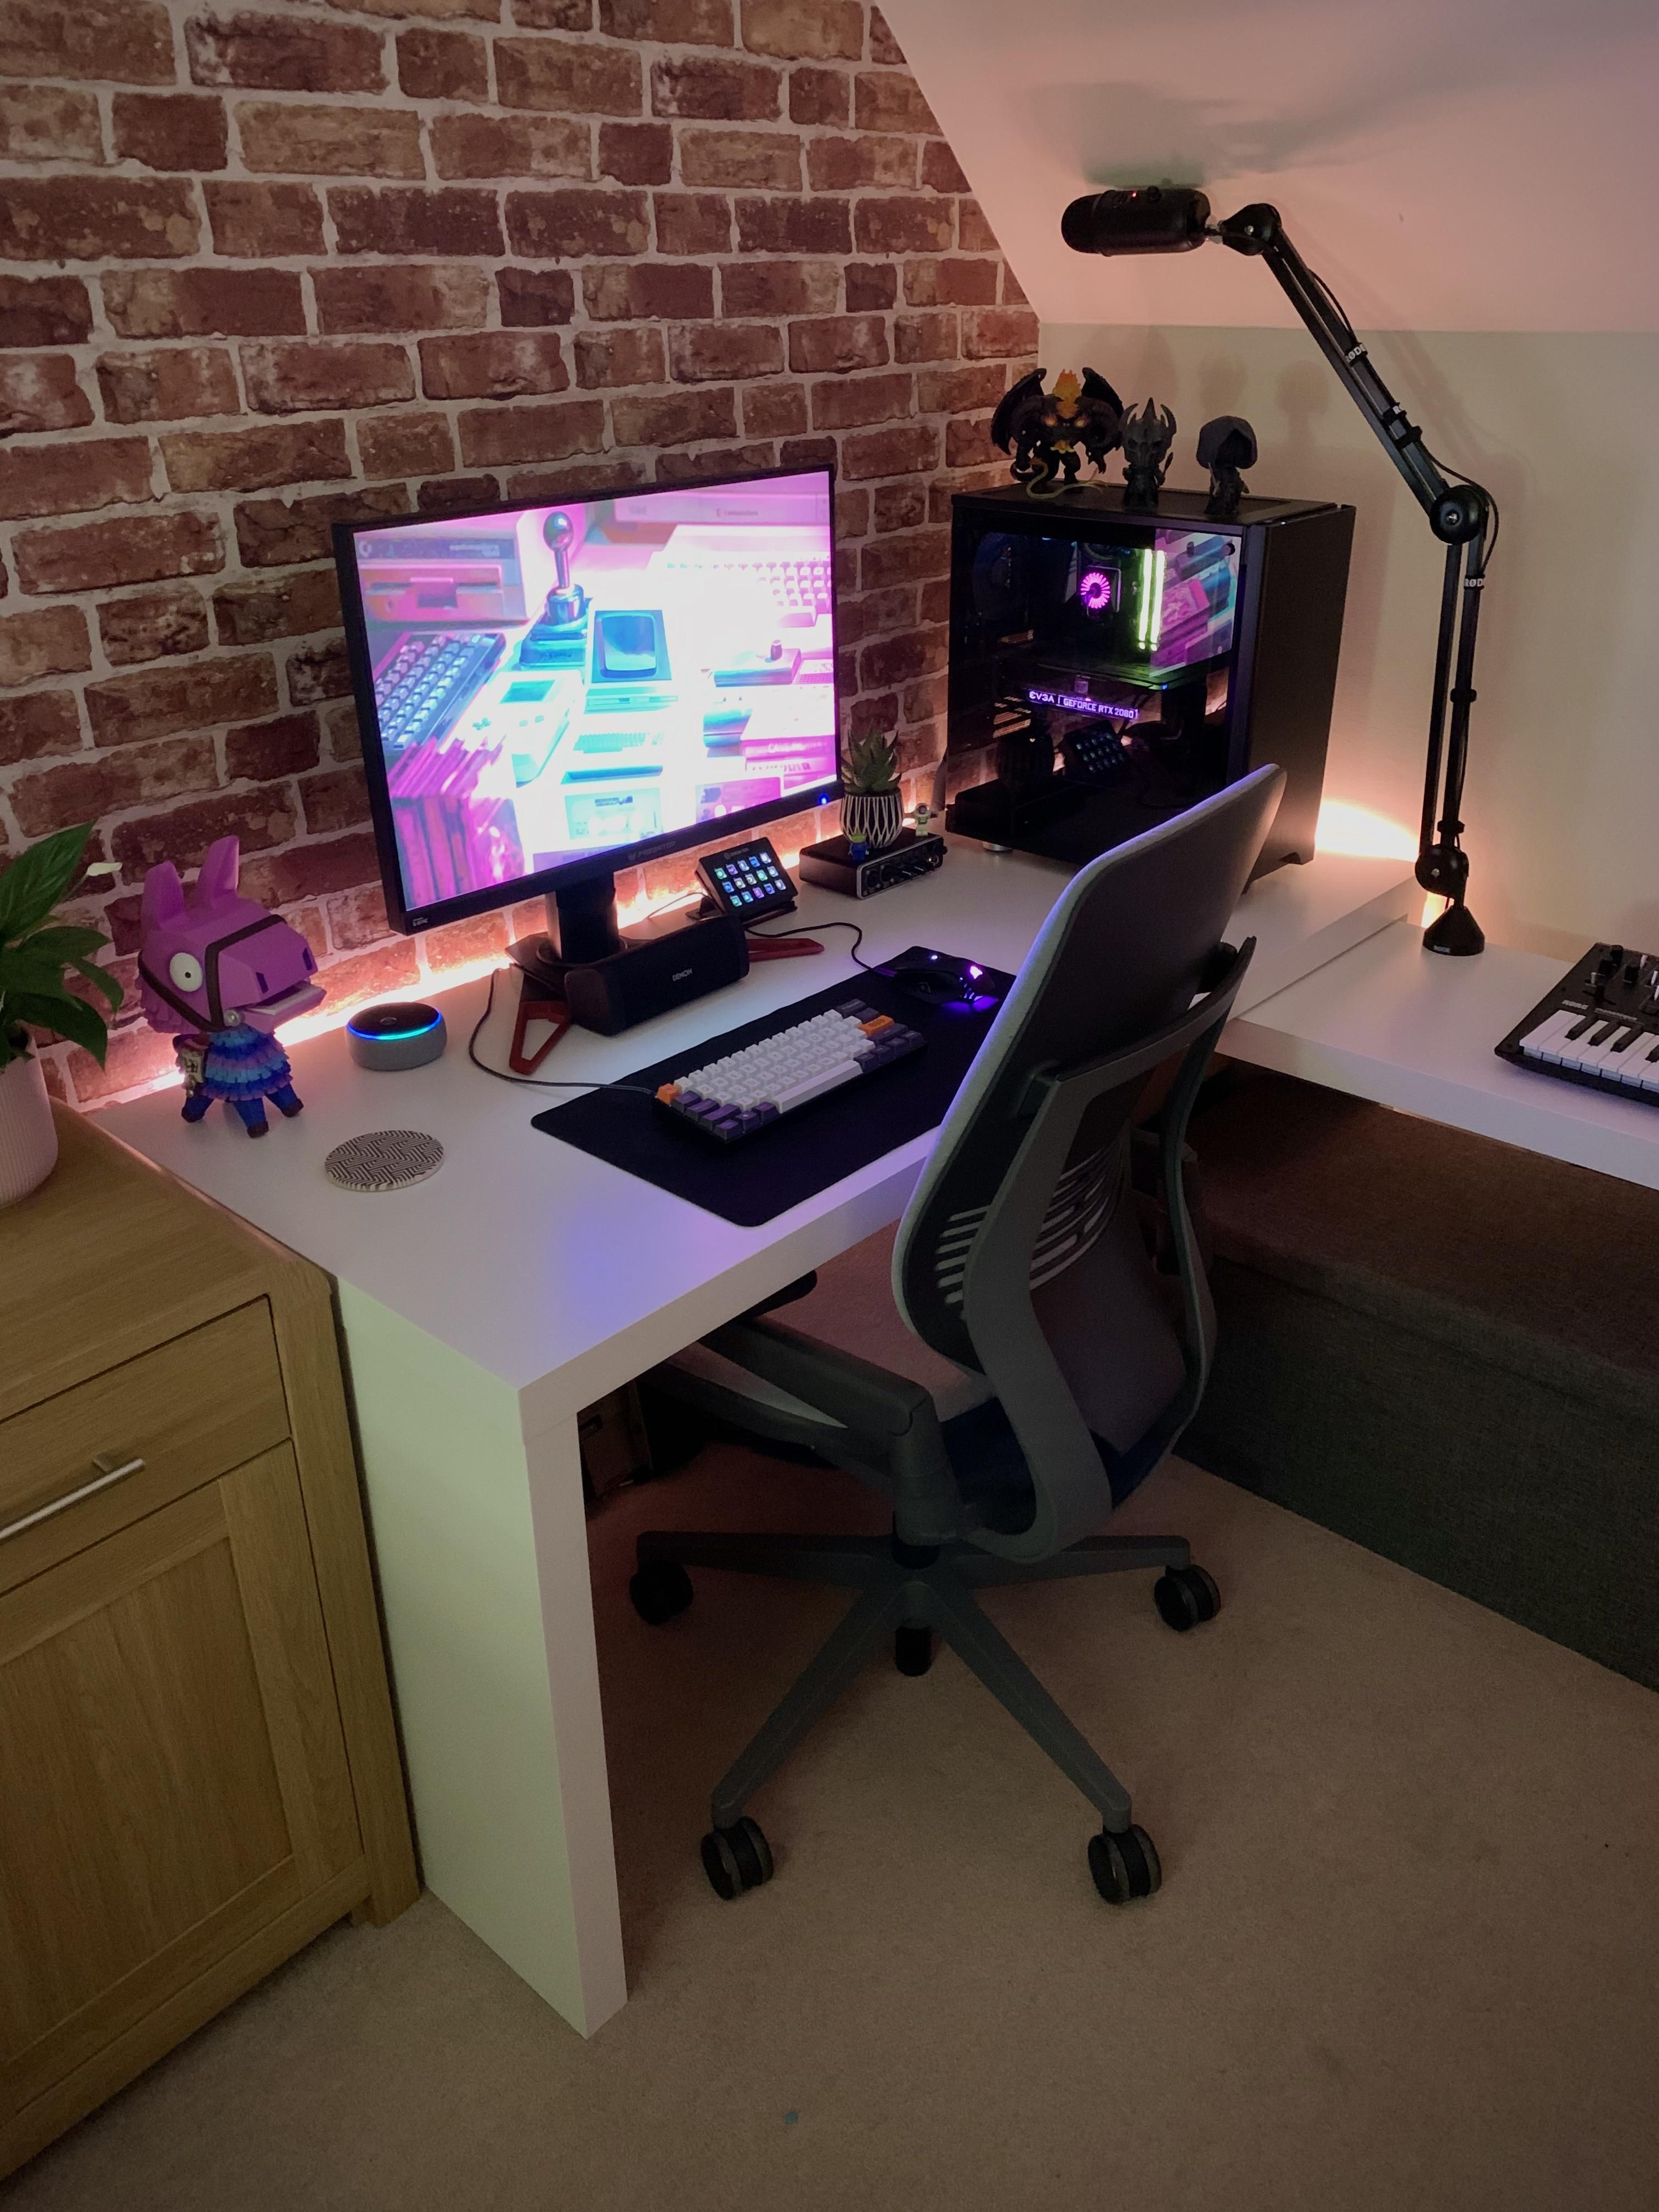 Finally upgraded to a proper chair in 2020 home office